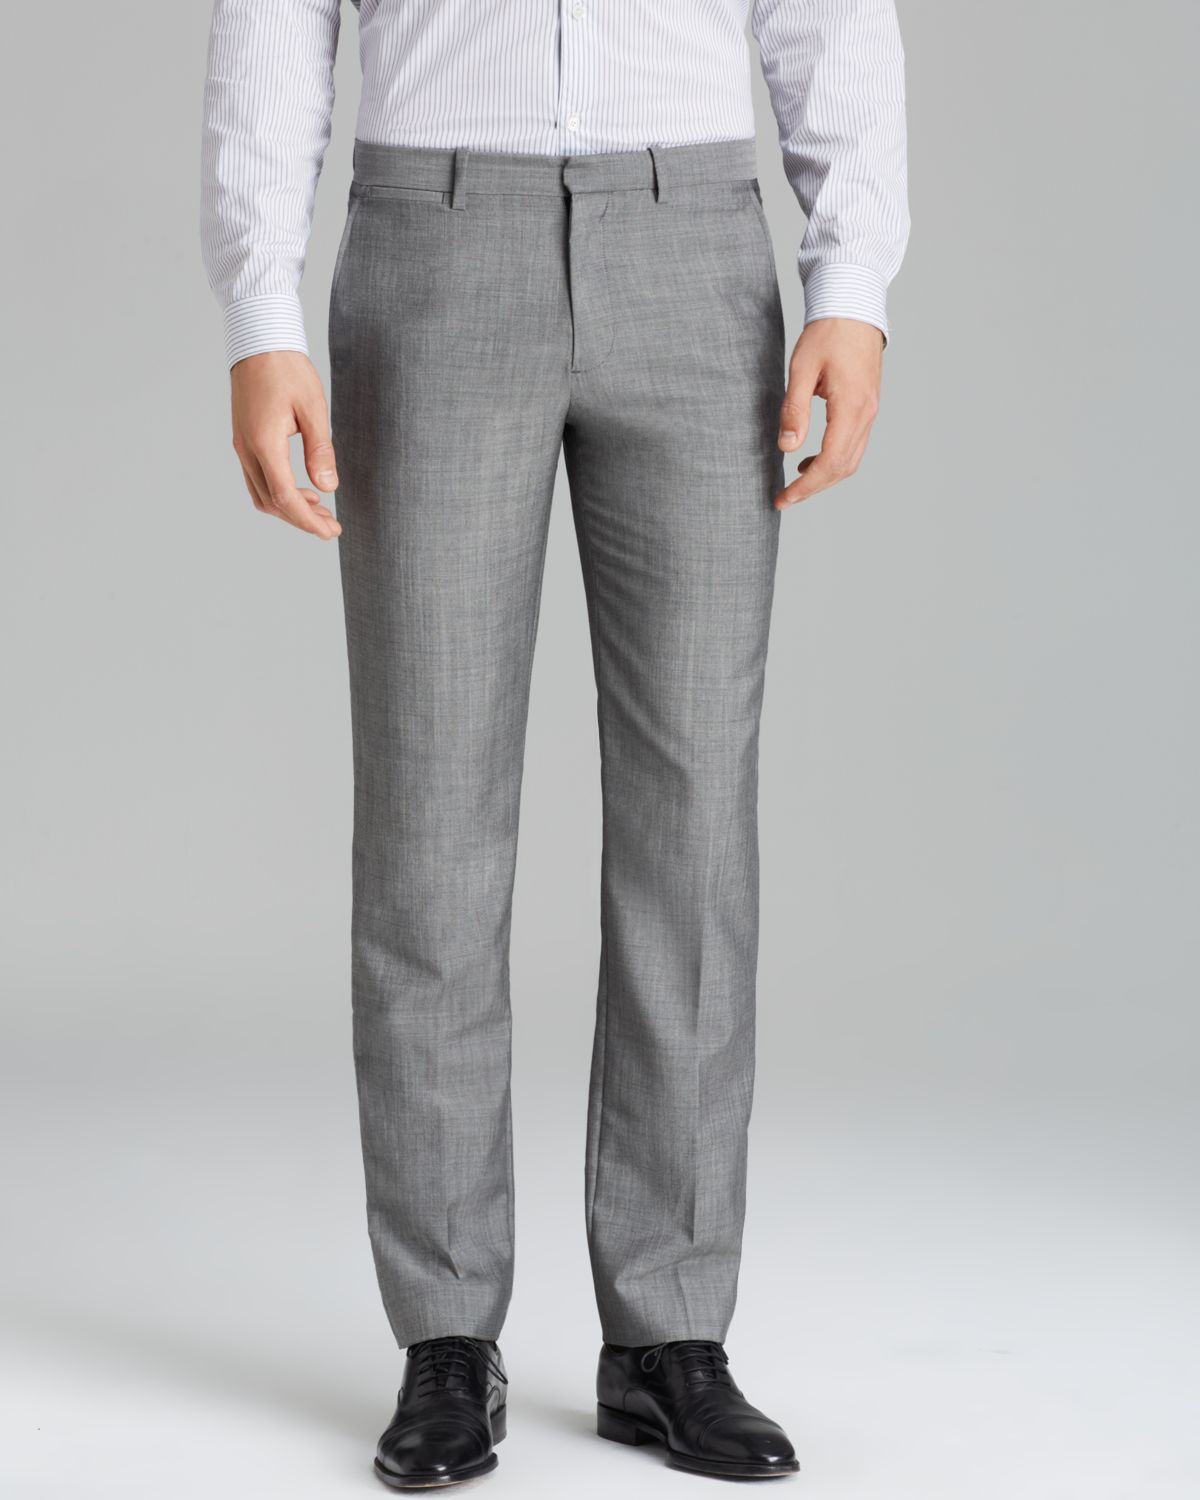 fincastle men Buy theory men's marlo pants, grey multi, 38: shop top fashion brands dress at amazoncom free delivery and returns possible on eligible purchases.